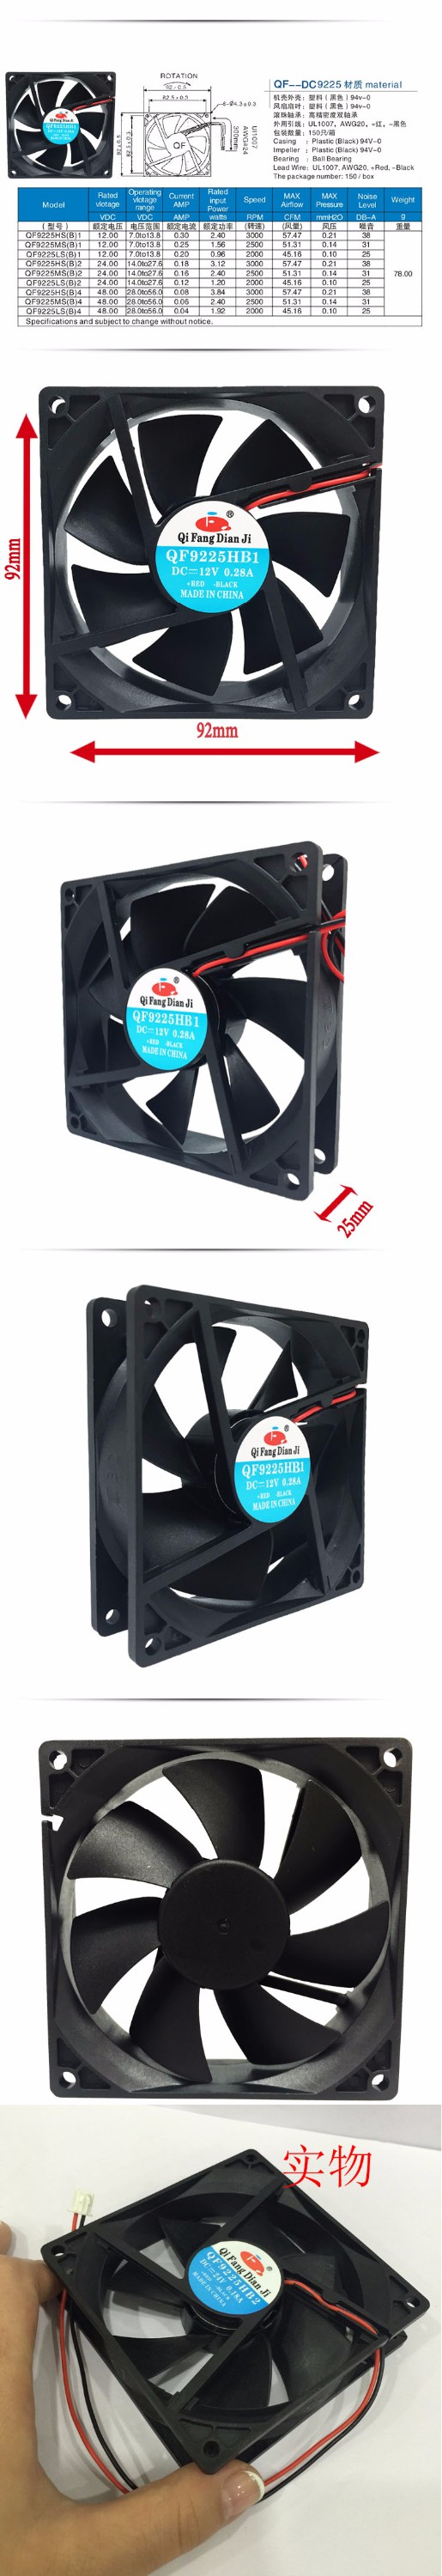 Hot sale mini fans for sale 92x92x25 low noise 92mm 5v dc mini sirocco fan